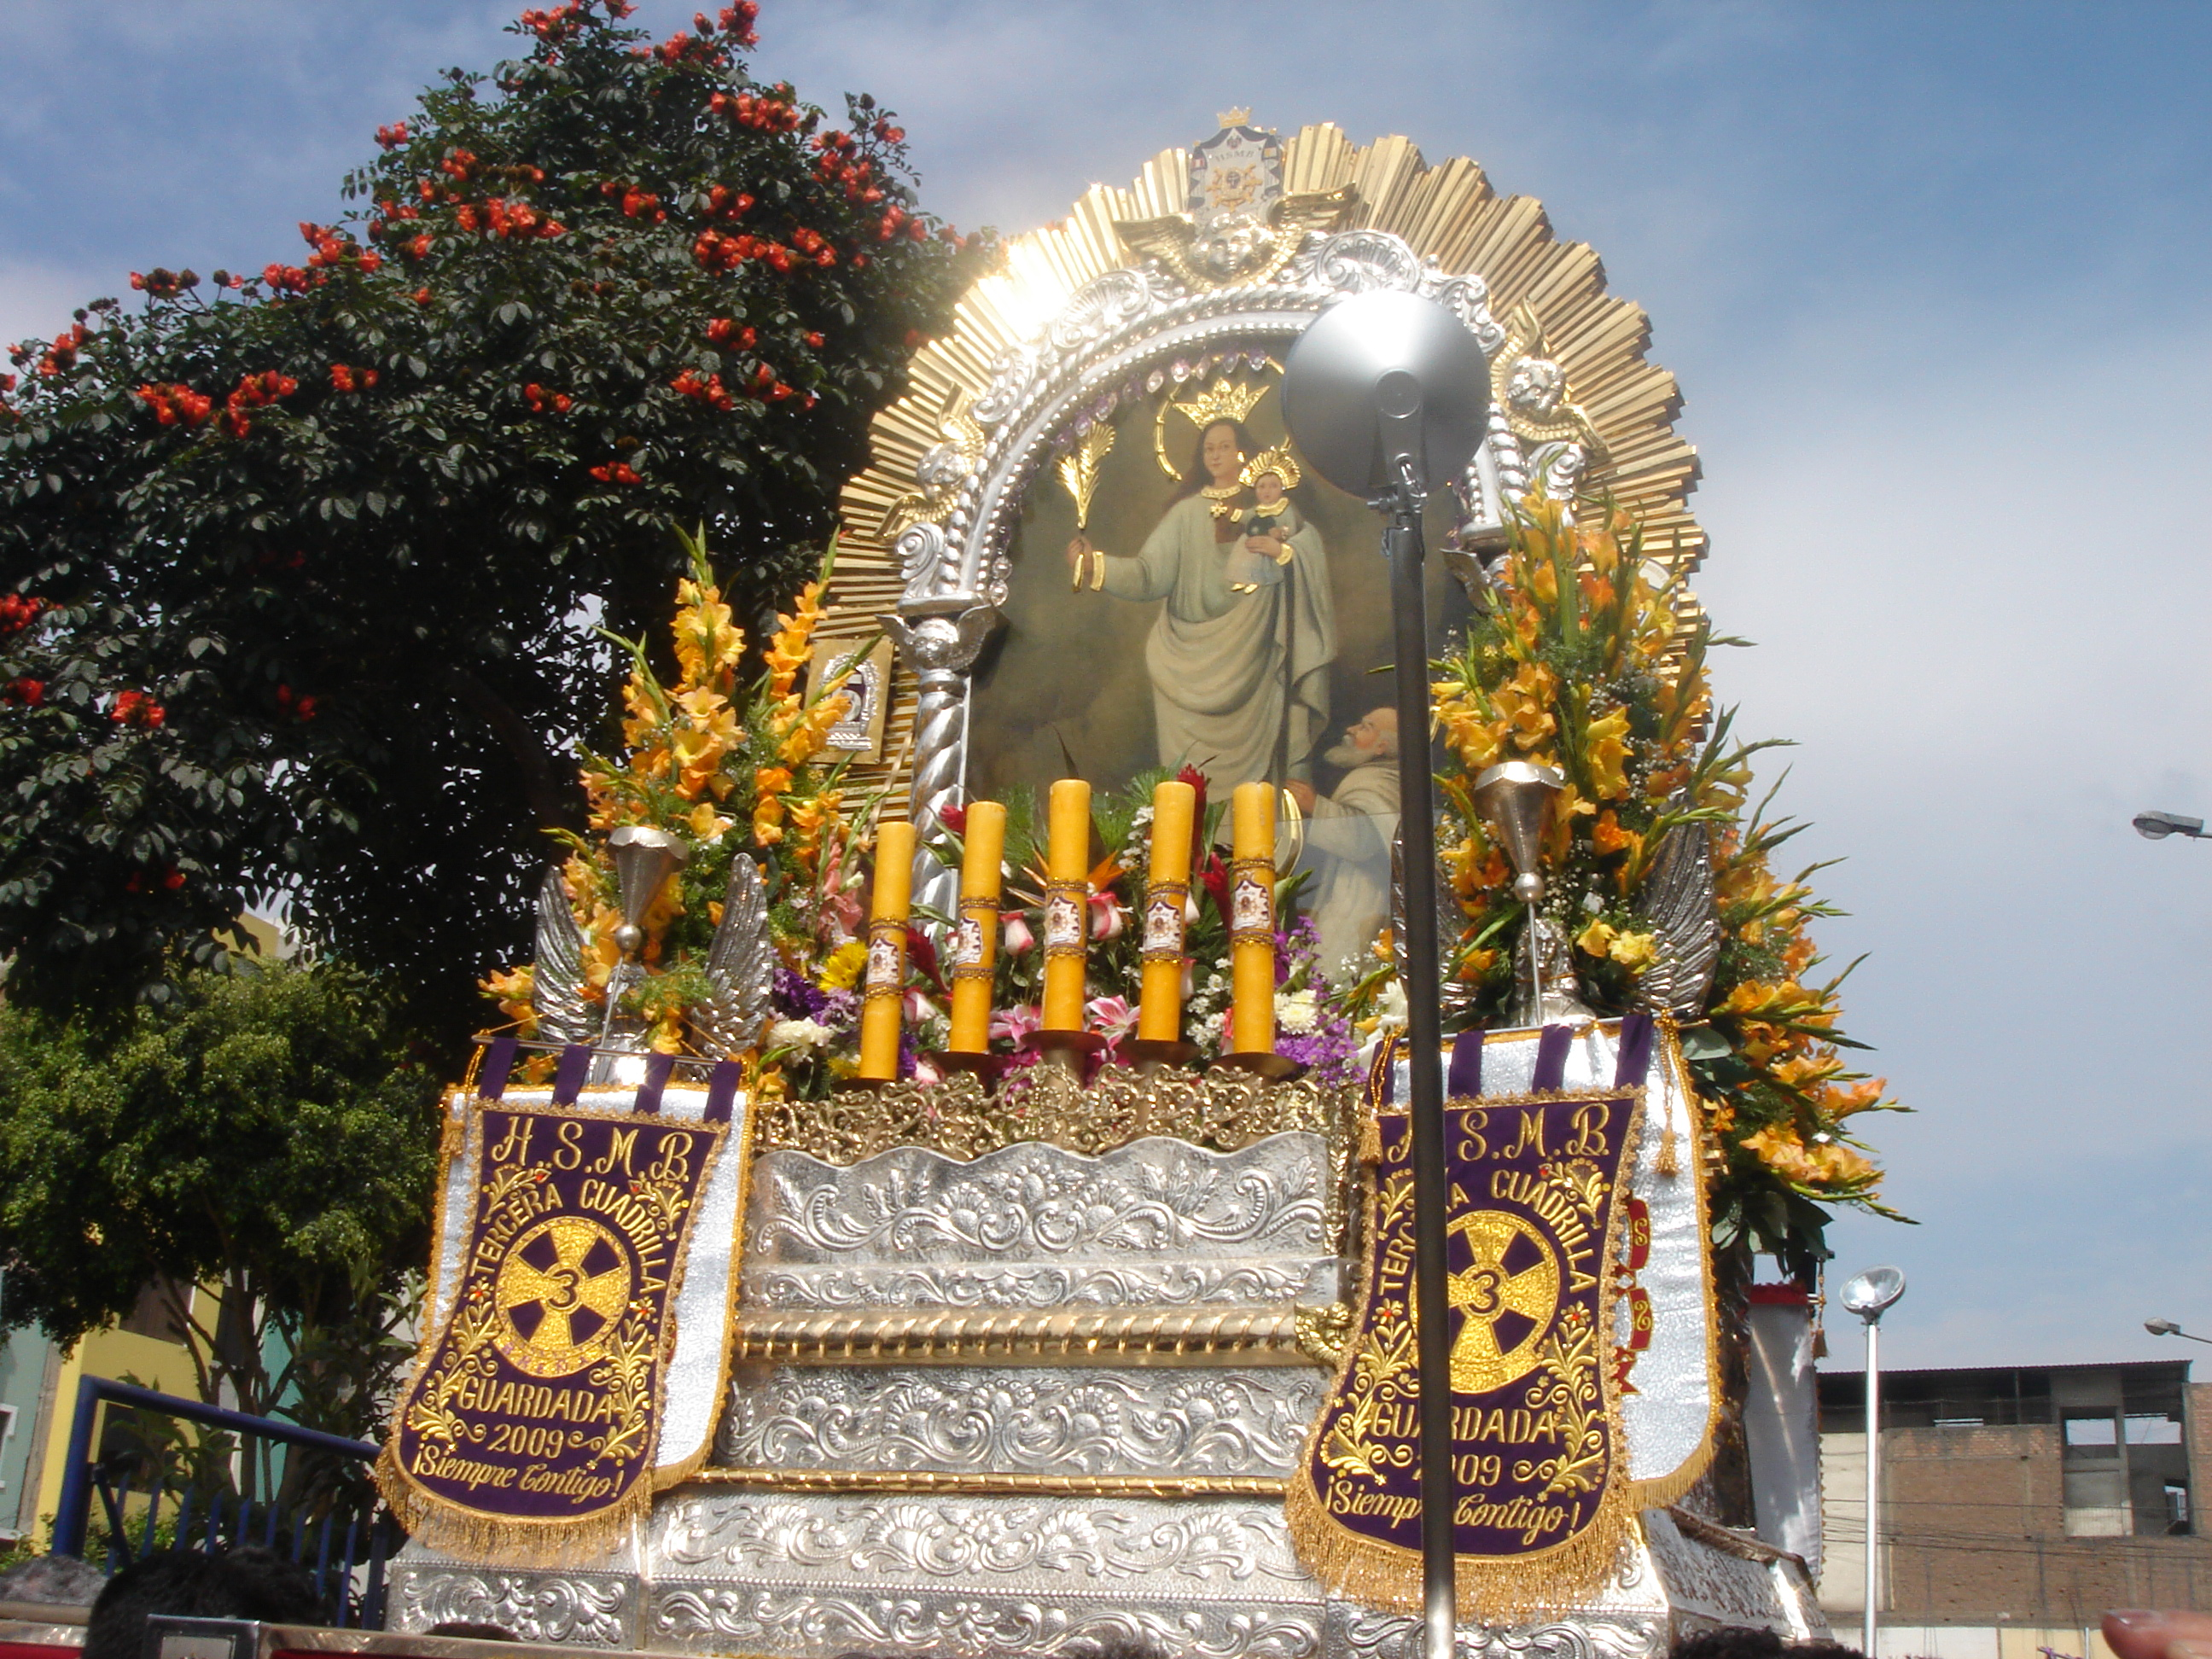 http://upload.wikimedia.org/wikipedia/commons/5/59/Virgen_de_la_Nube_Bre%C3%B1a001.jpg